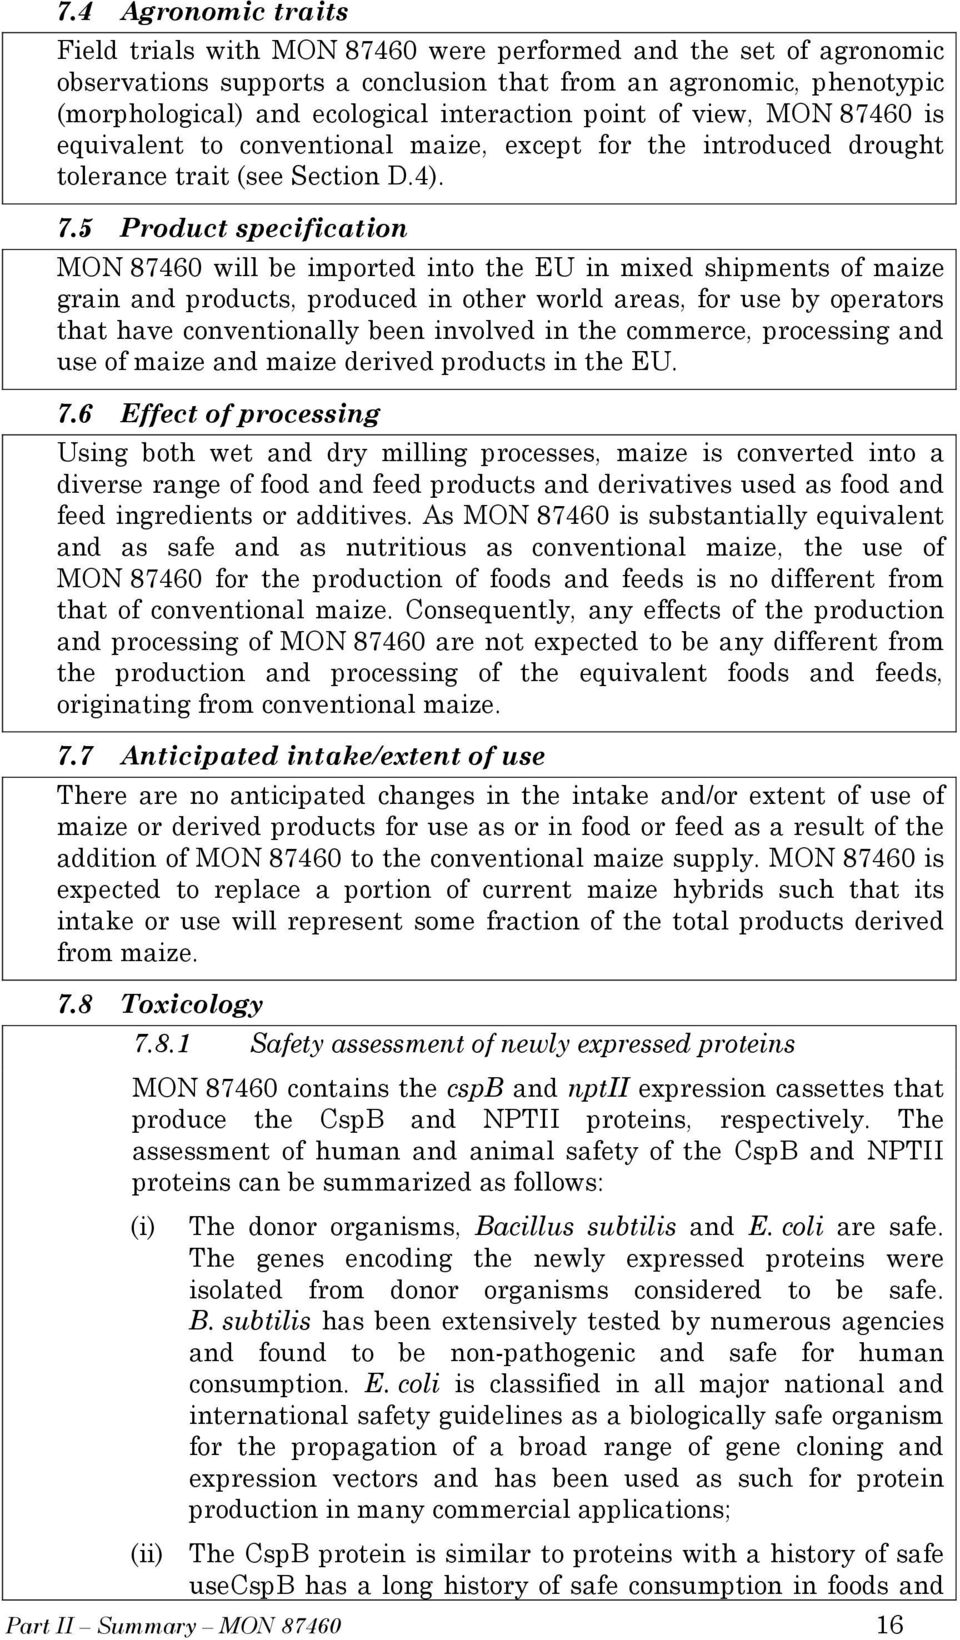 5 Product specification MON 87460 will be imported into the EU in mixed shipments of maize grain and products, produced in other world areas, for use by operators that have conventionally been